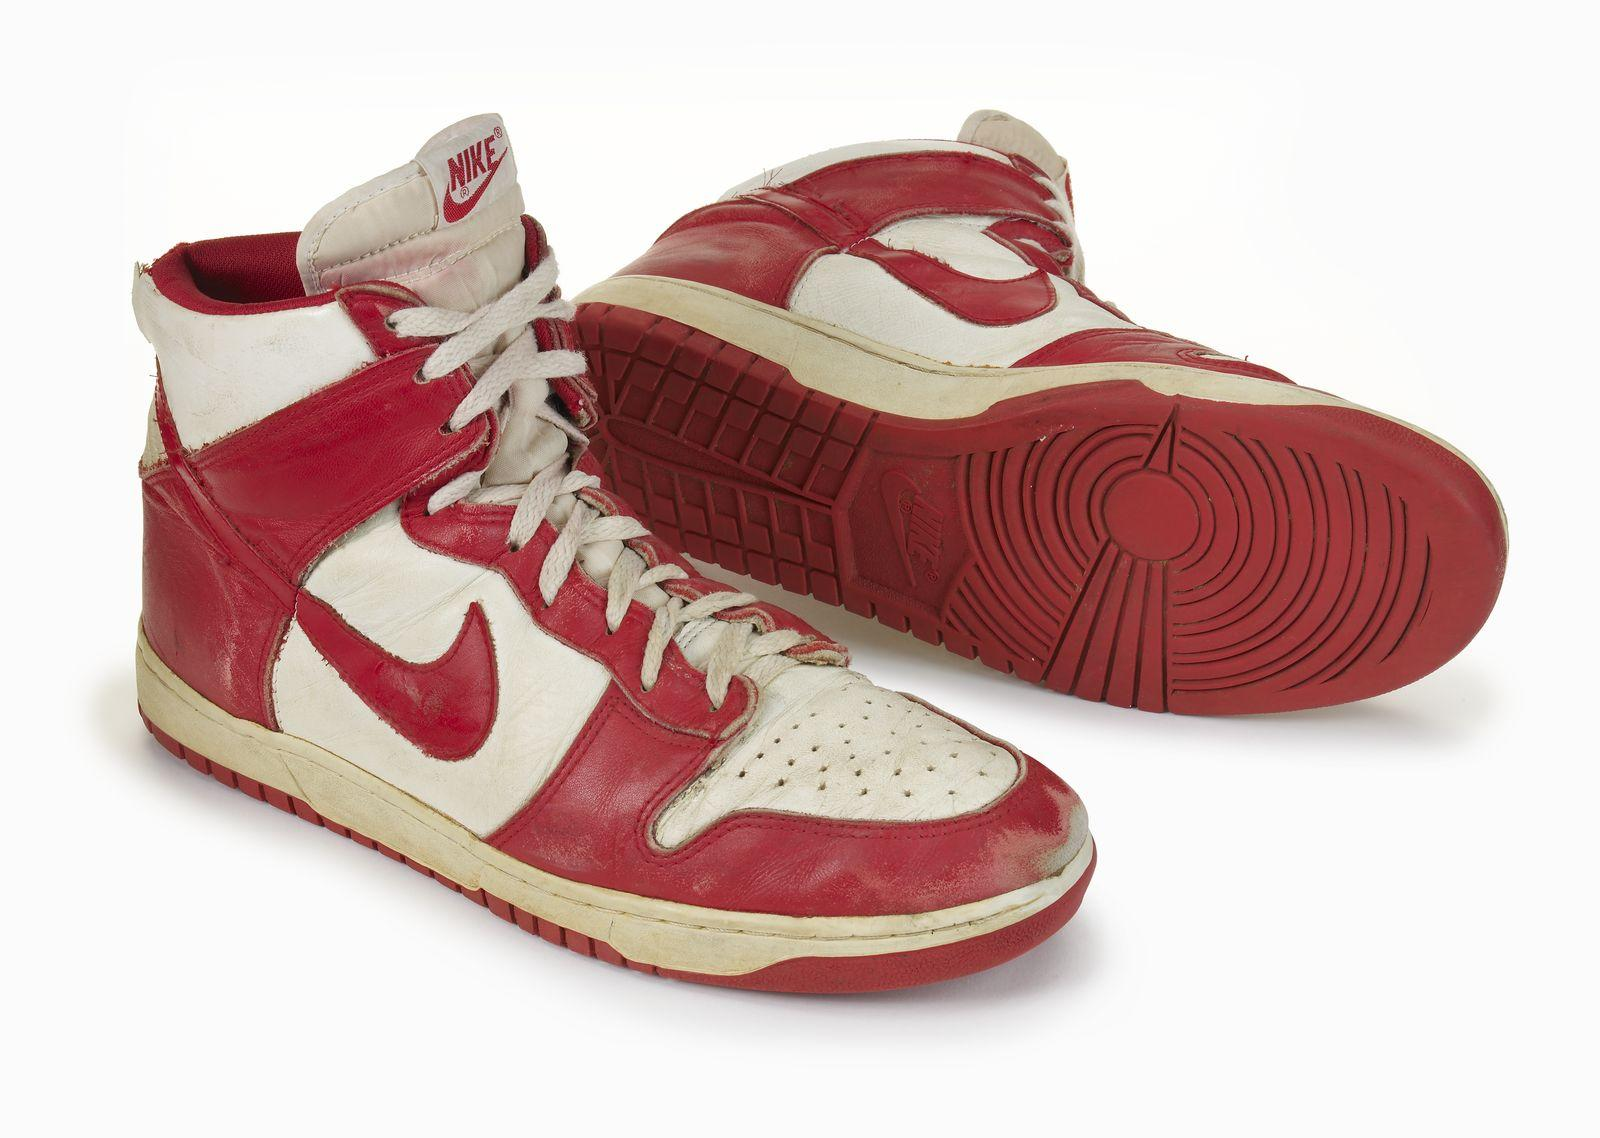 8a41040b6735 Inside Access  The Nike Dunk Celebrates 30 Years as an Icon - Nike News